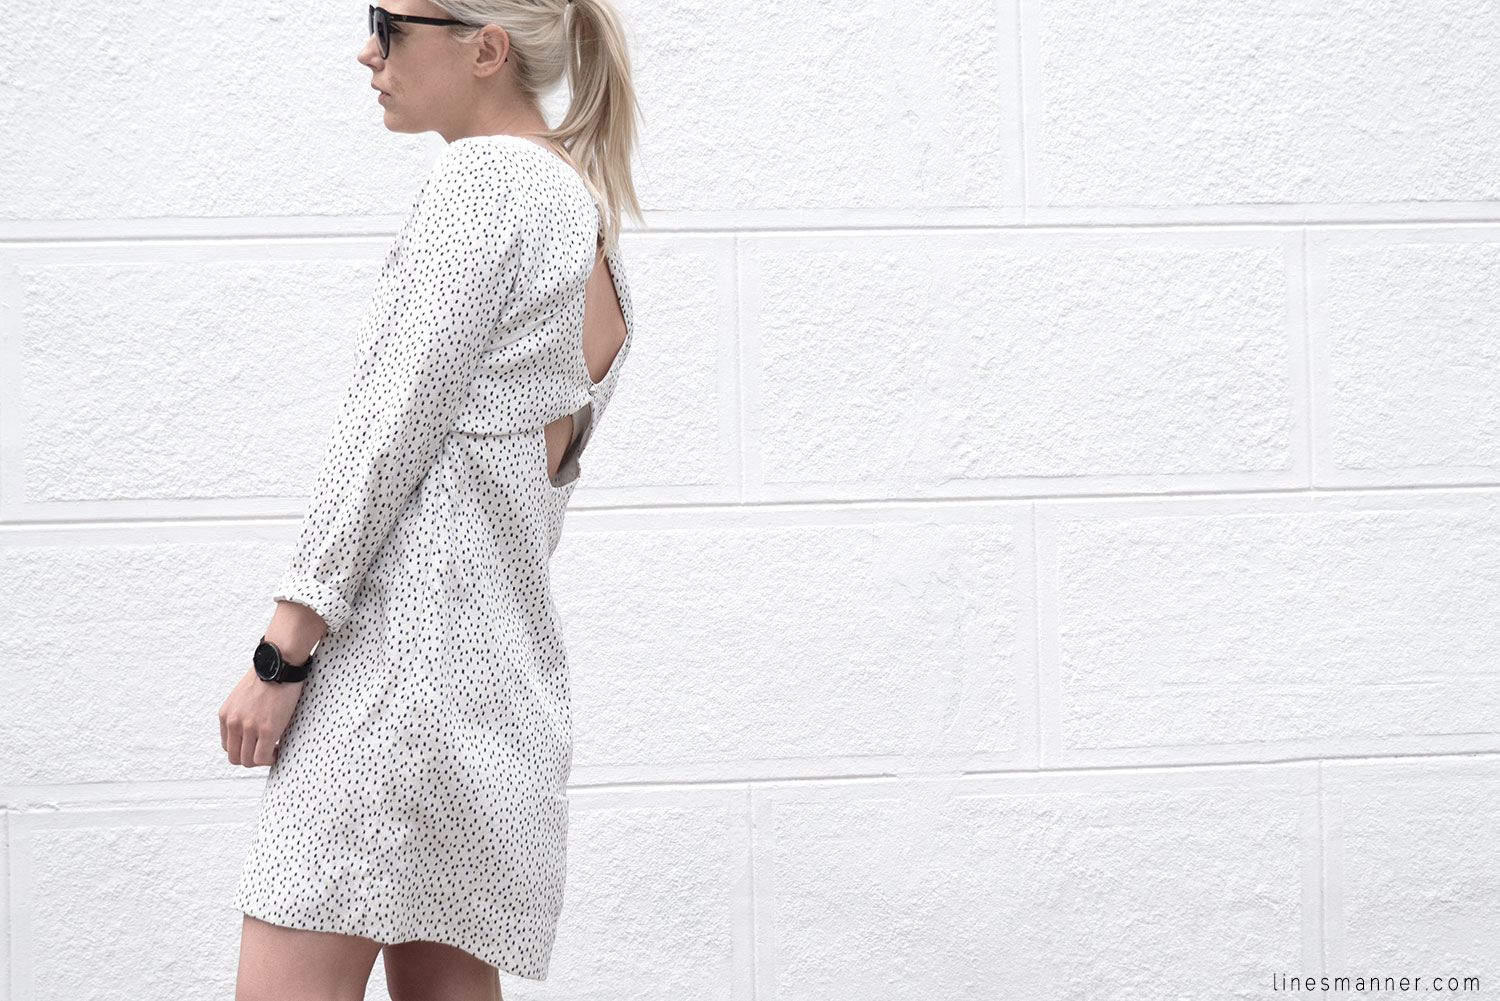 Lines-Manner-Minimal-Oldies-Dress-Sandro-Timeless-Design-Black_and_White-Details-Simplicity-Essential-Summer-Print-Quality-Wardrobe-6